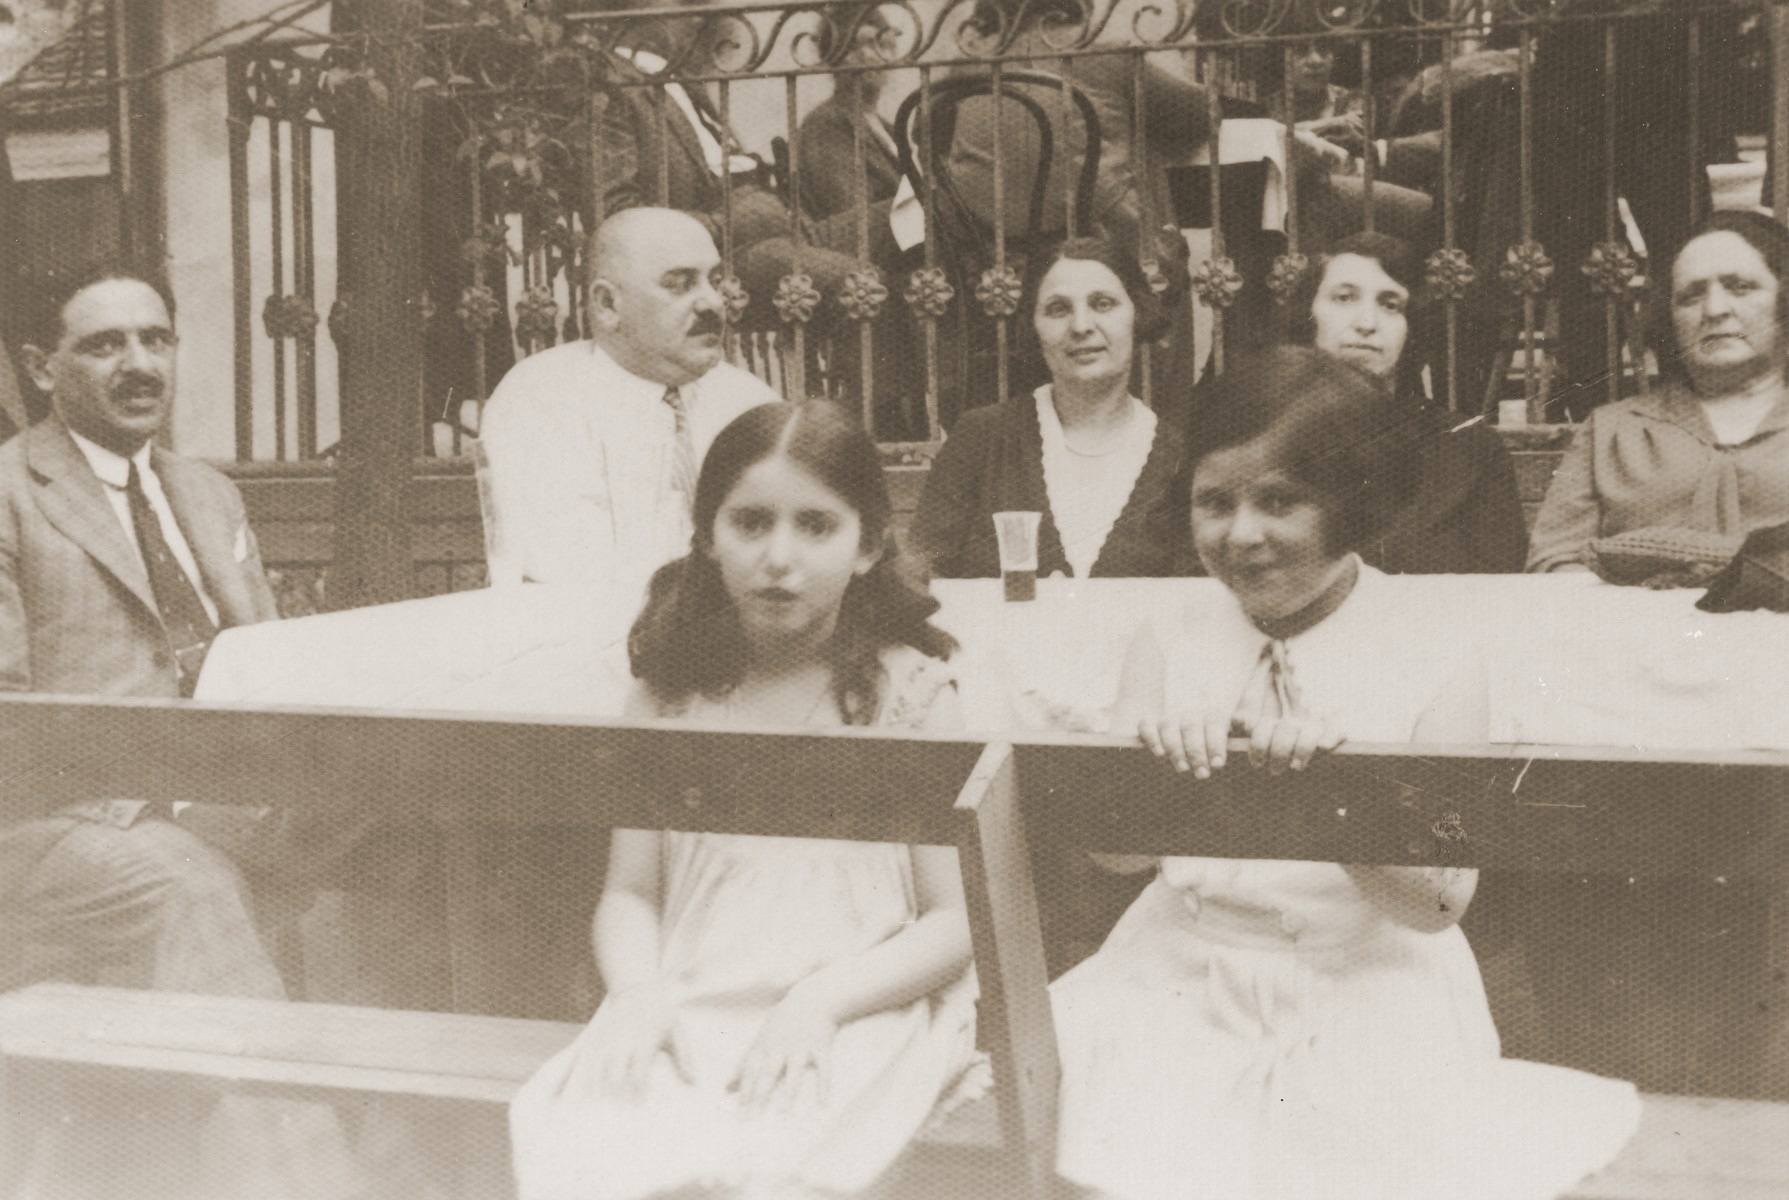 The Krausz and Winter families at an outdoor cafe in Budapest.  Among those pictured are Abraham Krausz (far left); Margit Krausz (center with glass); Auguszta Winter (mother of Margit, far right); and Klara Krausz (child at right).